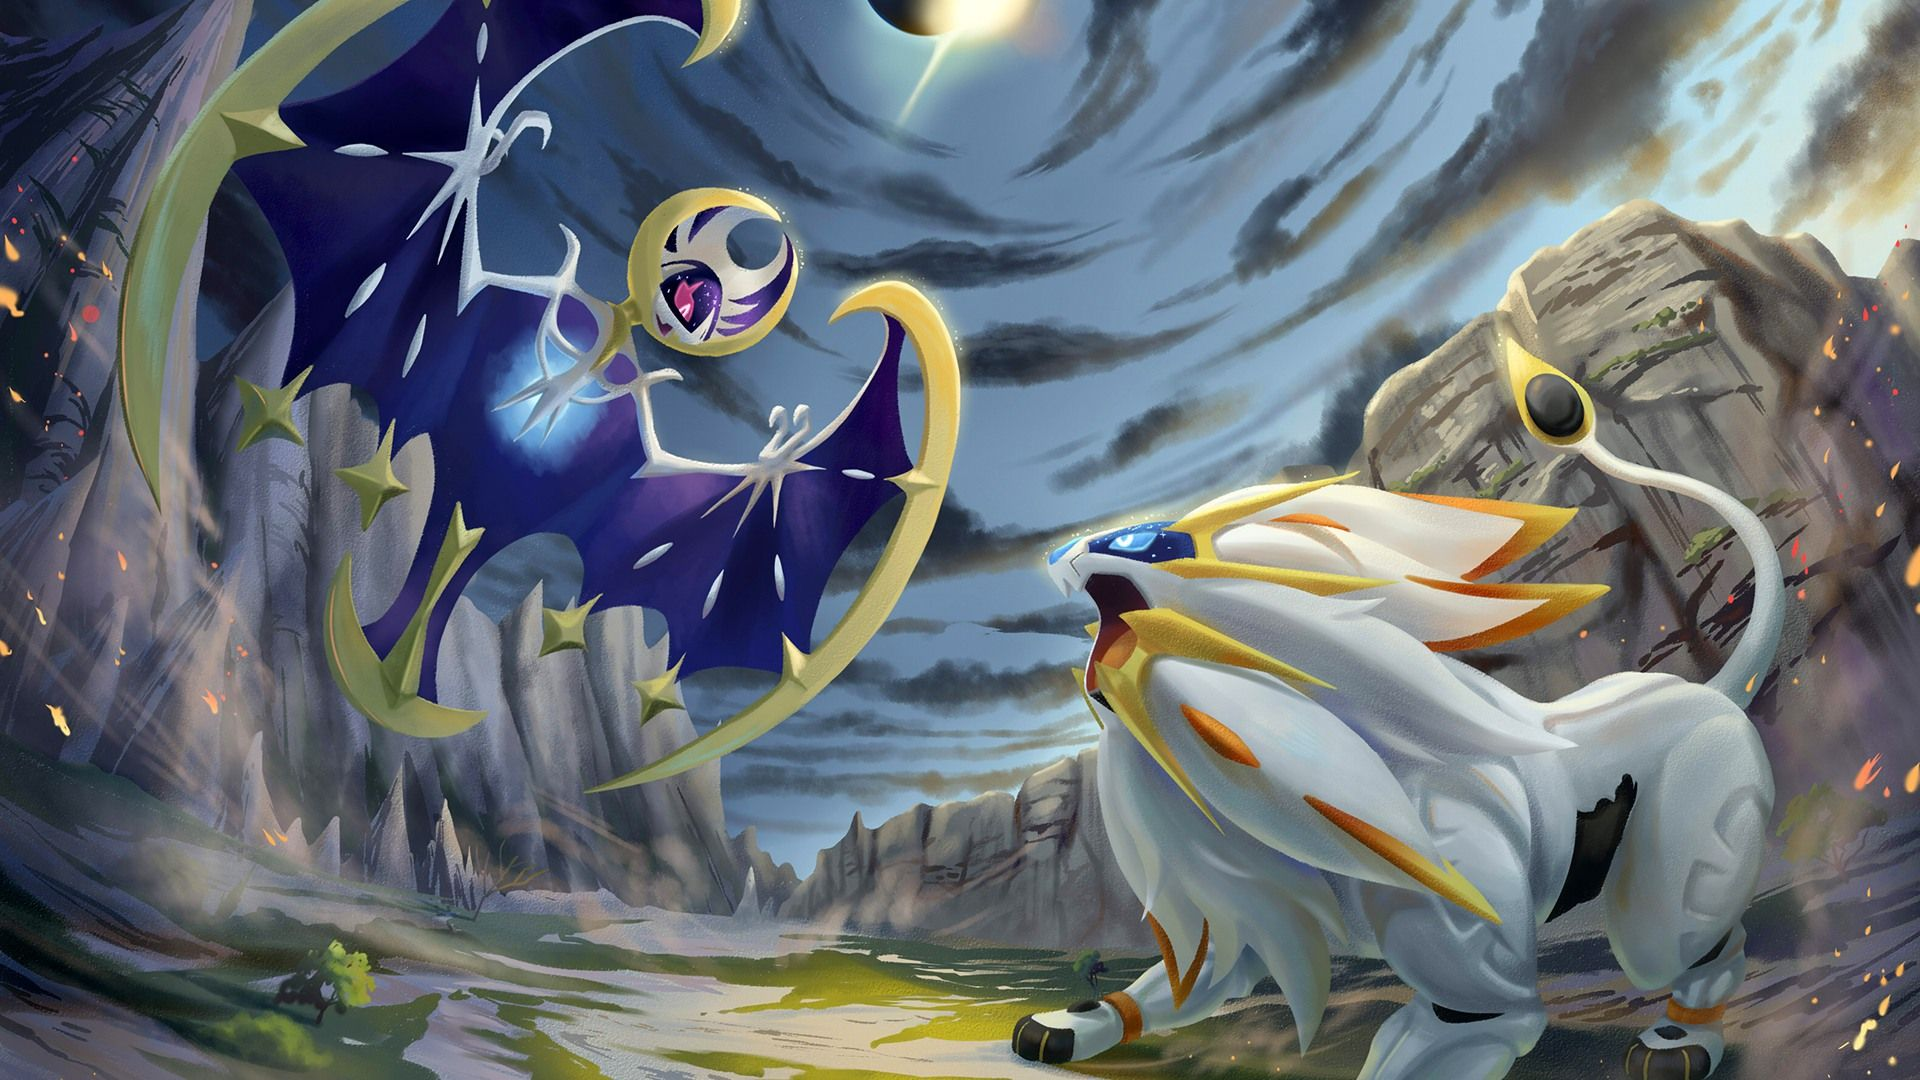 Pokemon Sun And Moon Wallpaper: Pokemon Sun And Moon Solgaleo Vs Lunala